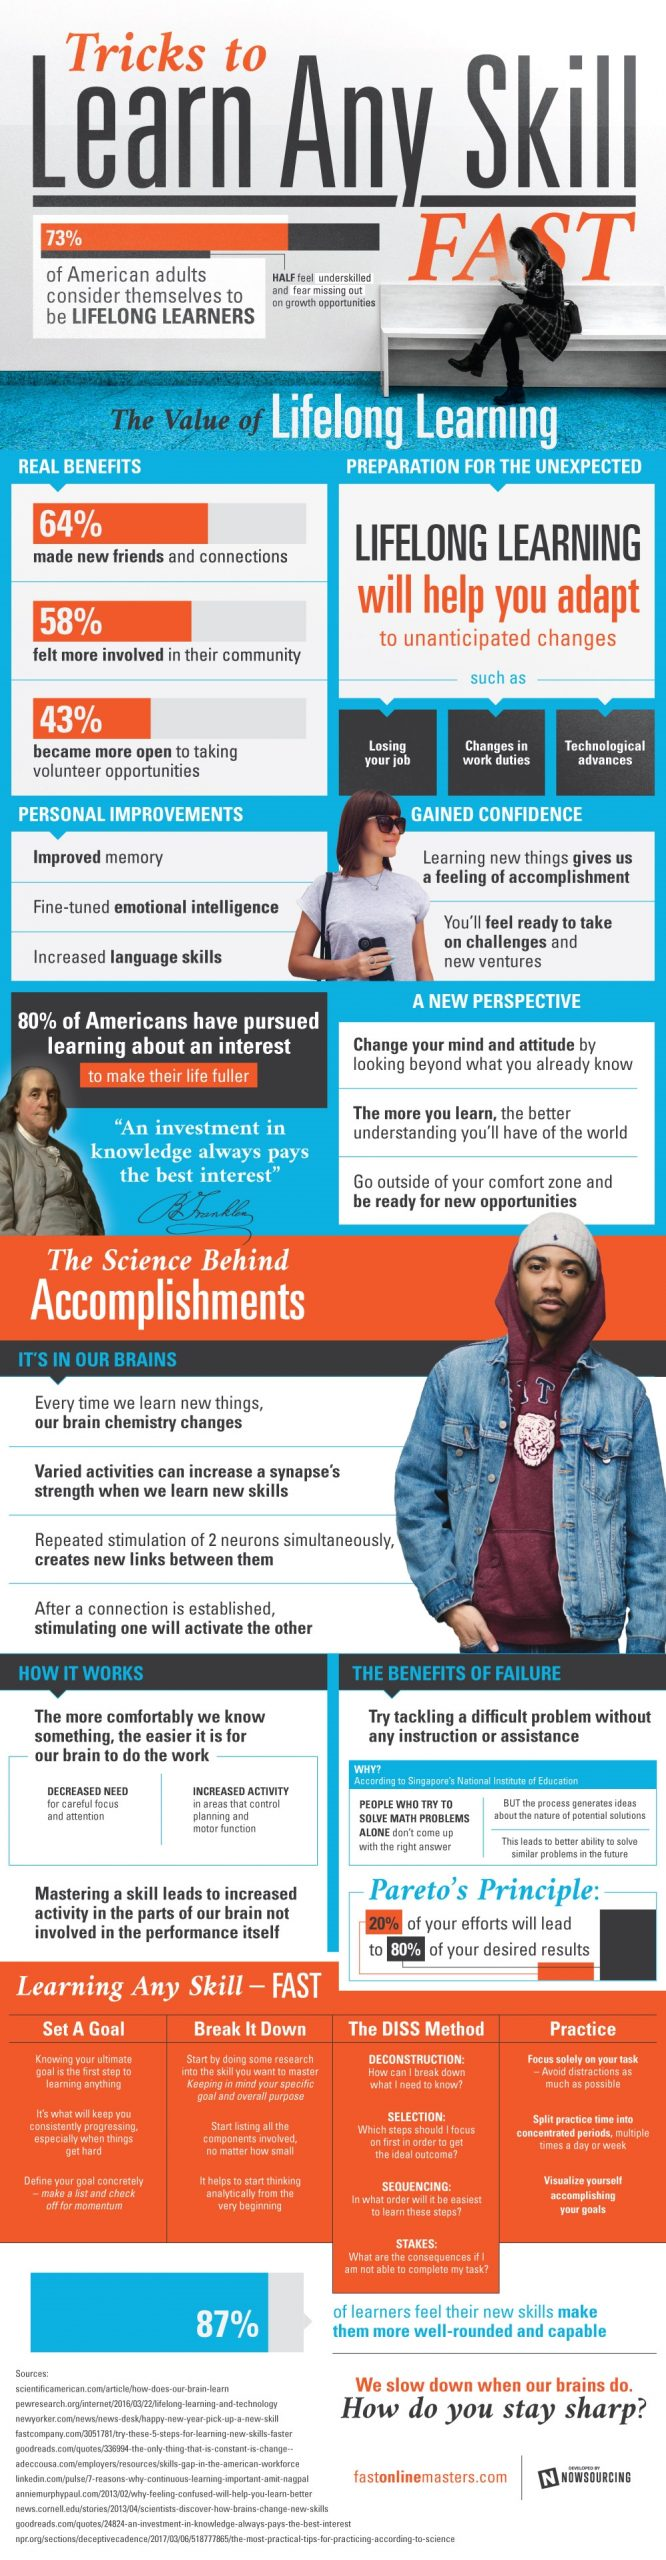 The Importance of Professional Development [Infographic]